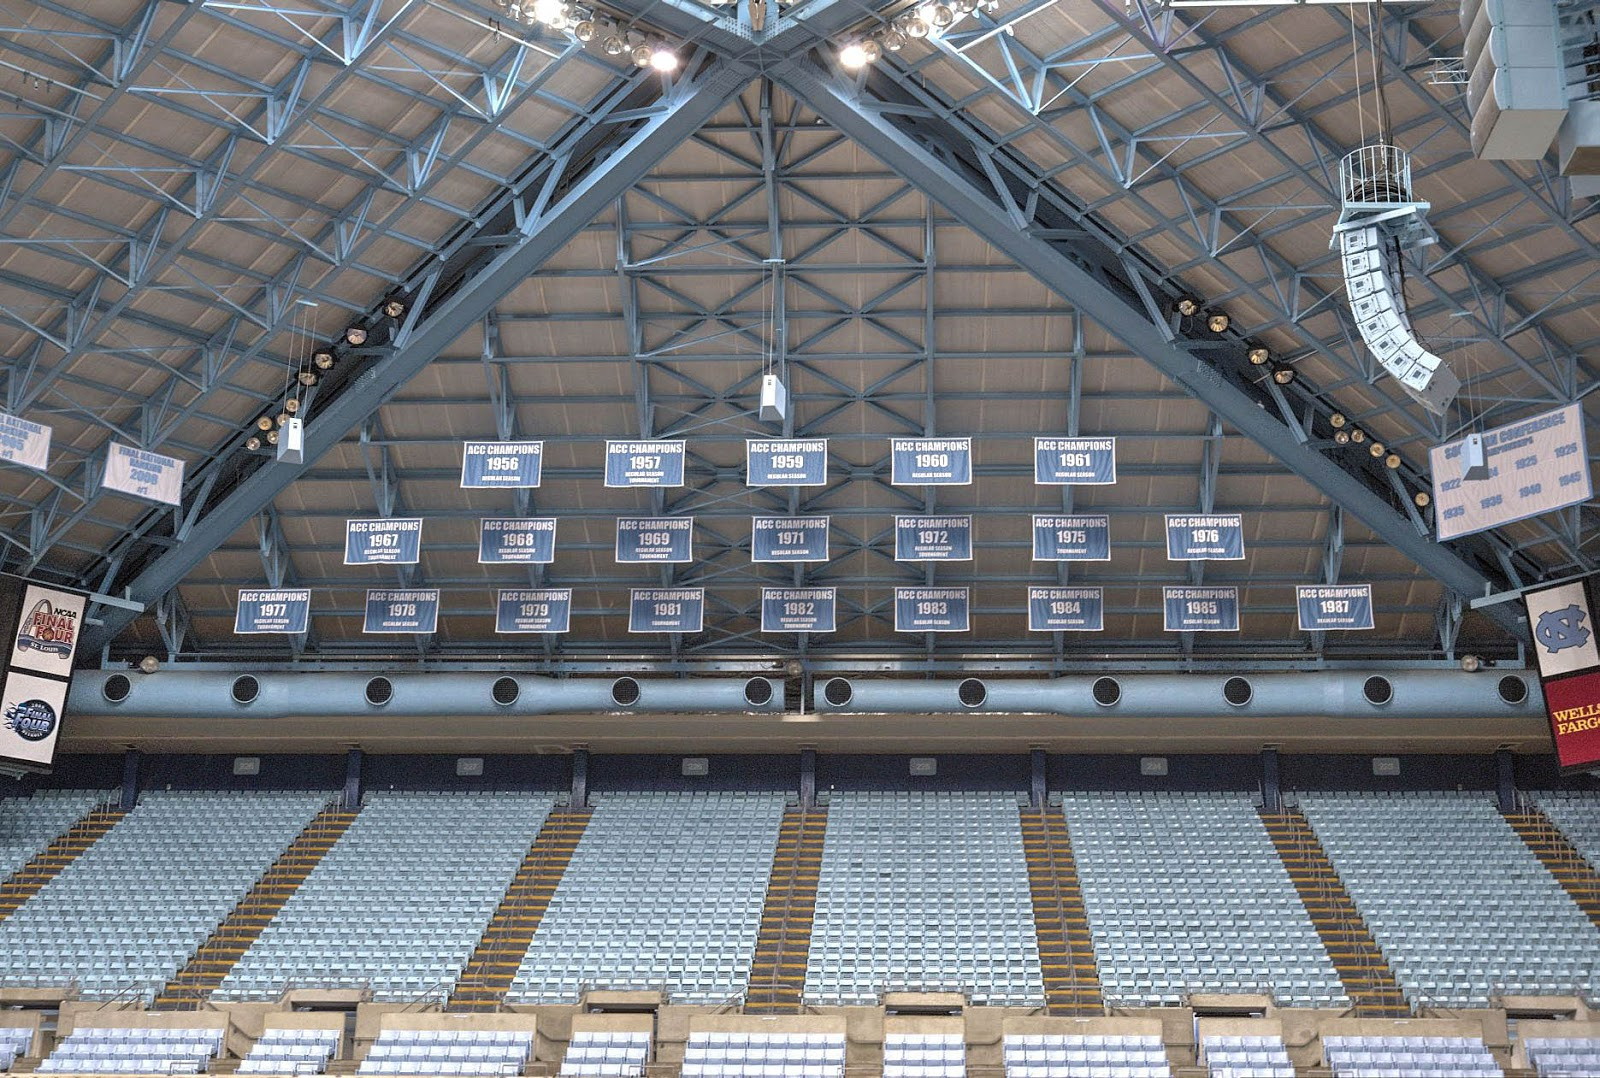 The Rafters In Smith Center Are A Virtual Adjunct To Museum Above Uniforms Of Tar Heels Best Known Players And Below Just One Section